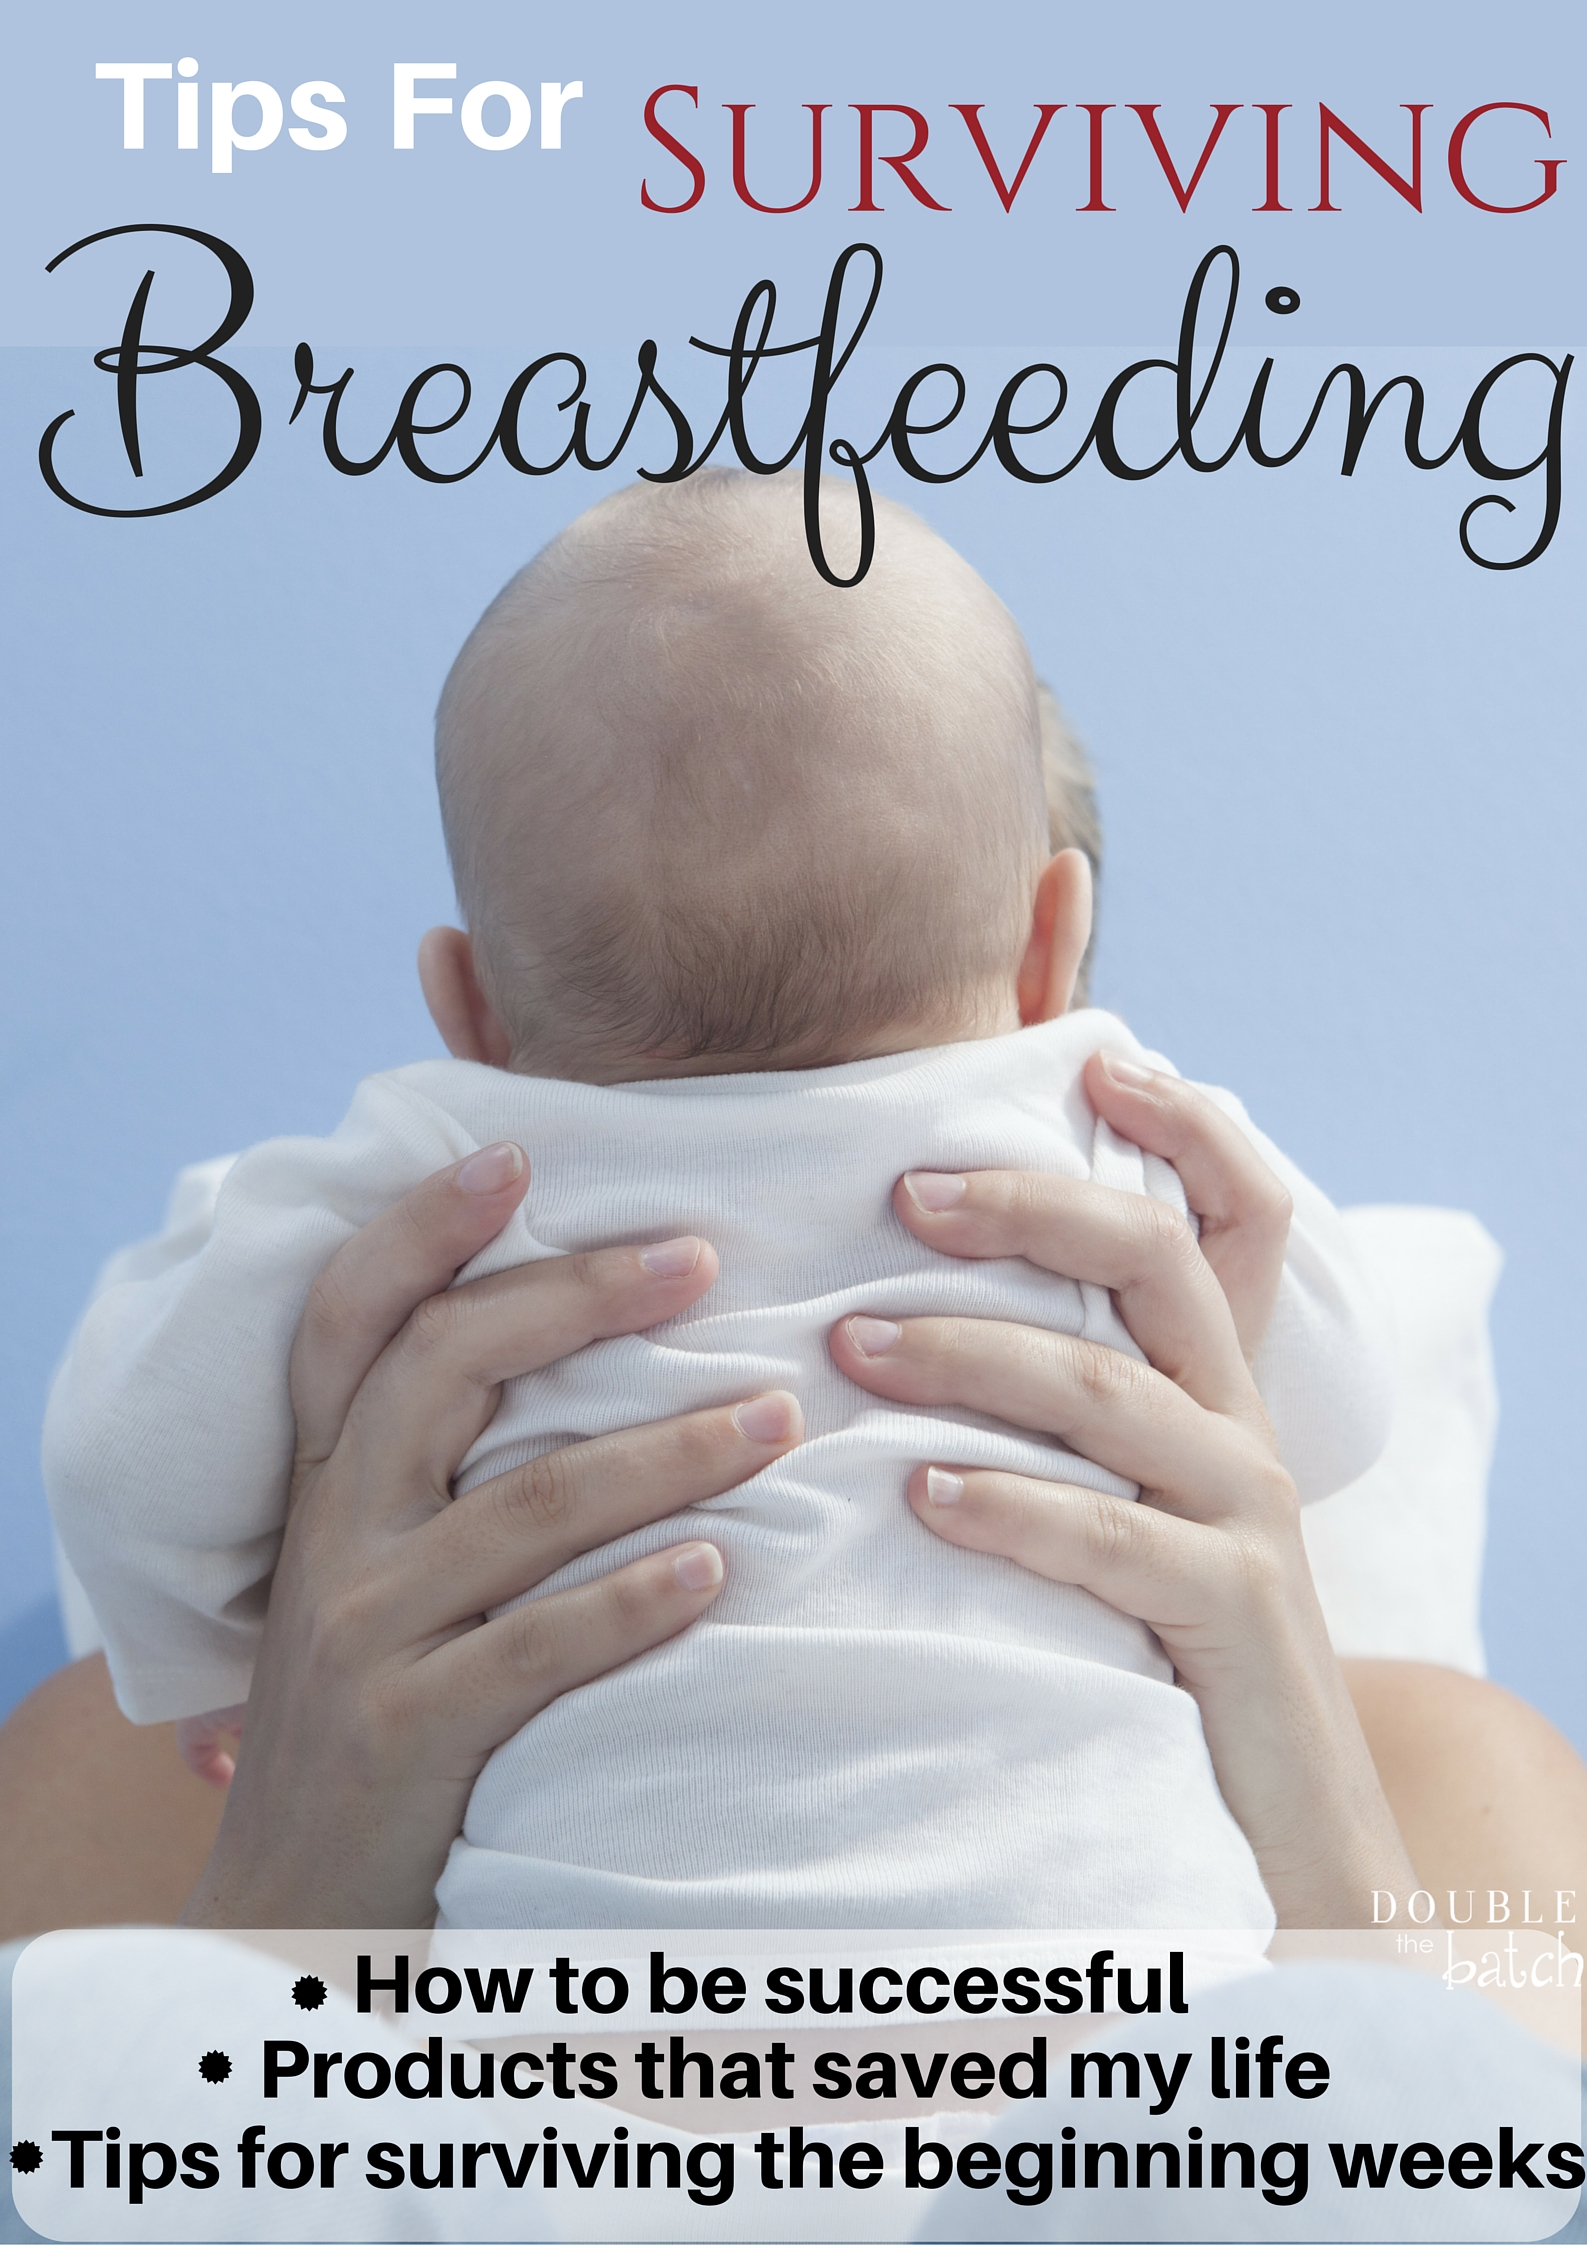 We all know breastfeeding can be a big challenge at times, especially in those first few weeks, thankfully there are so many ways to make it a more easy and enjoyable experience!